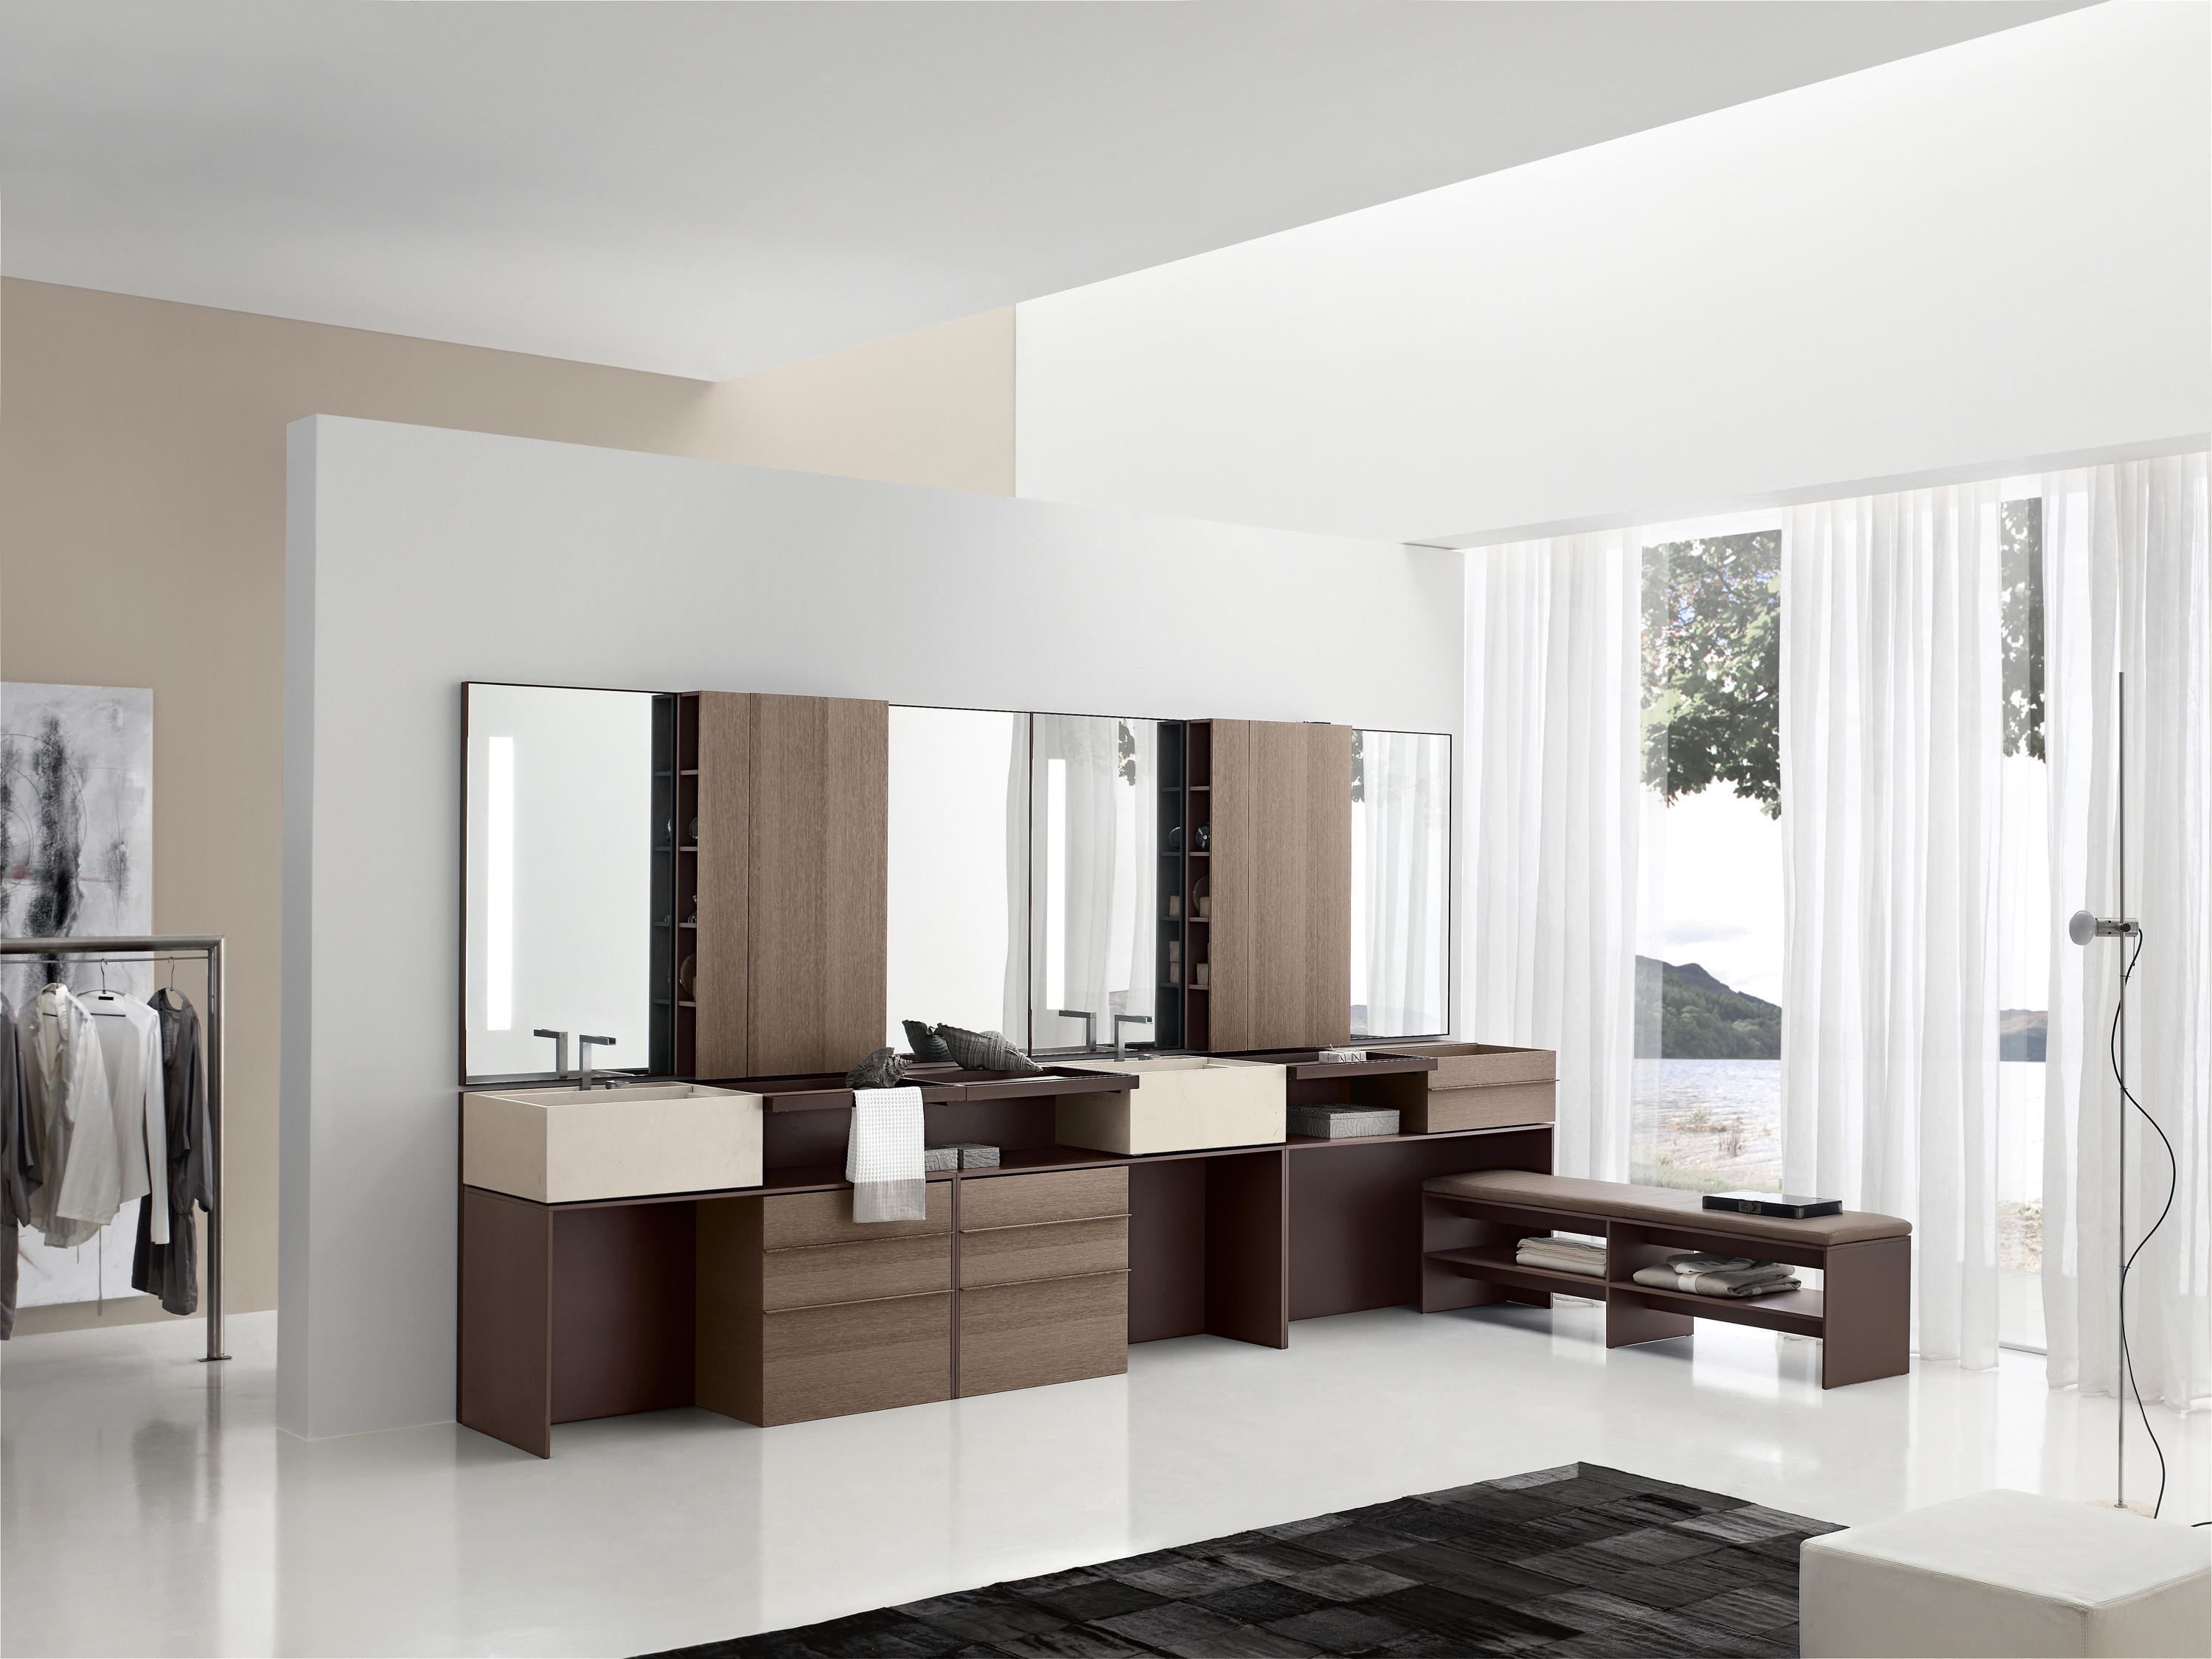 ELEMENTS - Vanity units from Toscoquattro  Architonic